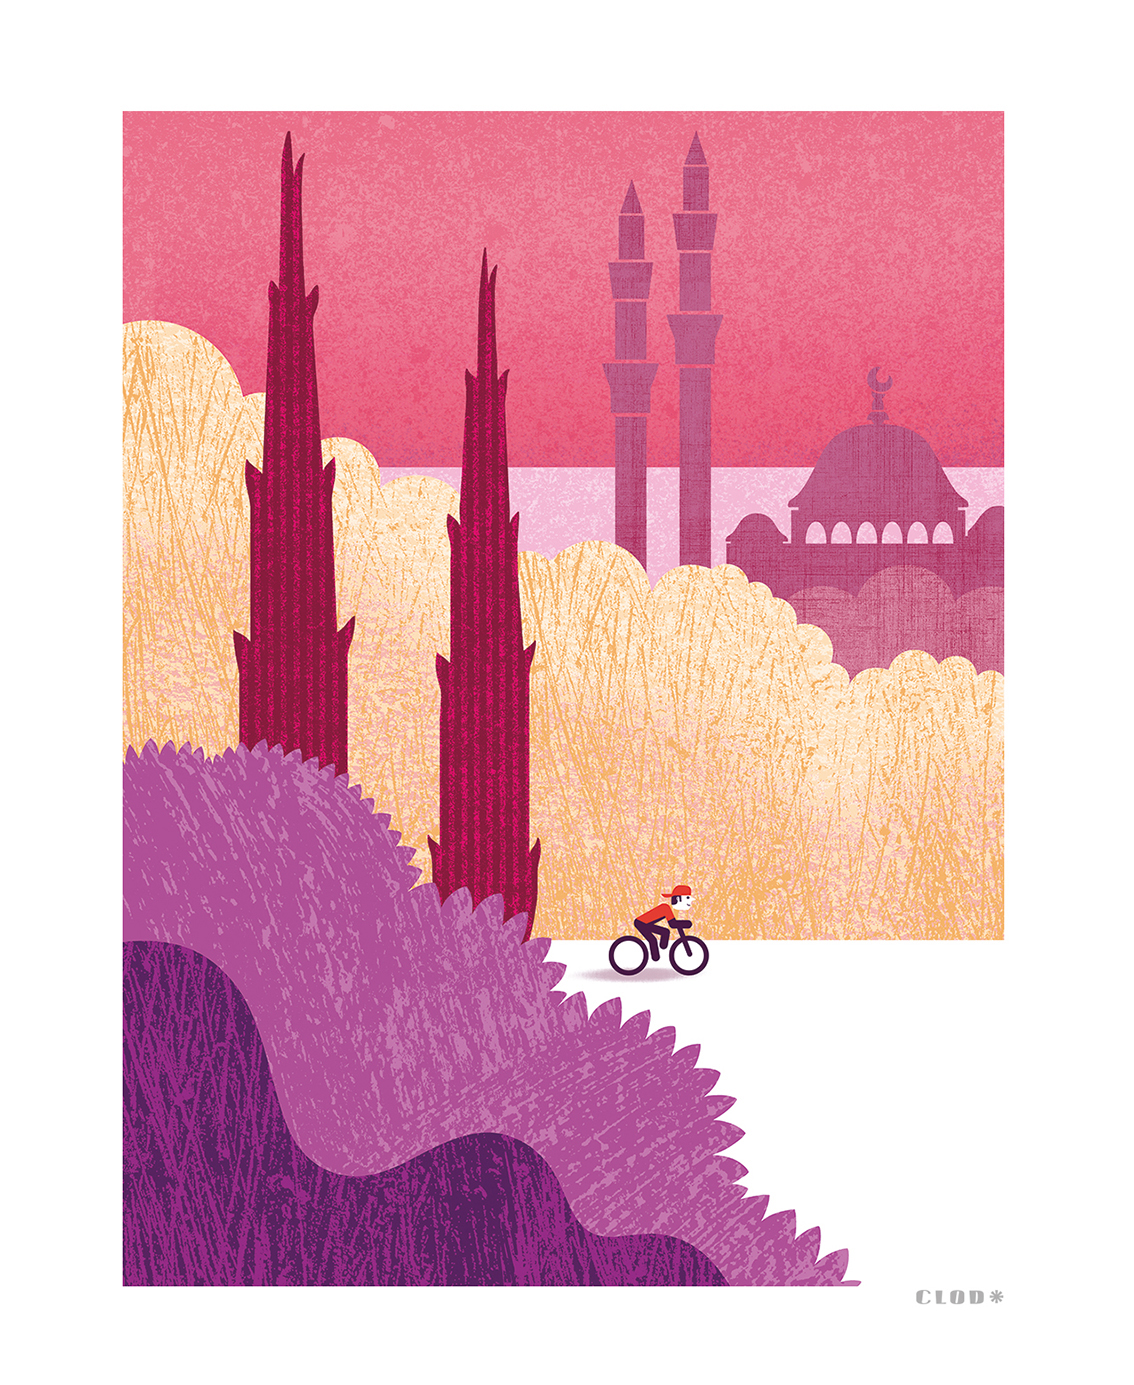 Clod illustration tirage d'art PapaPaper vélo à Istanbul